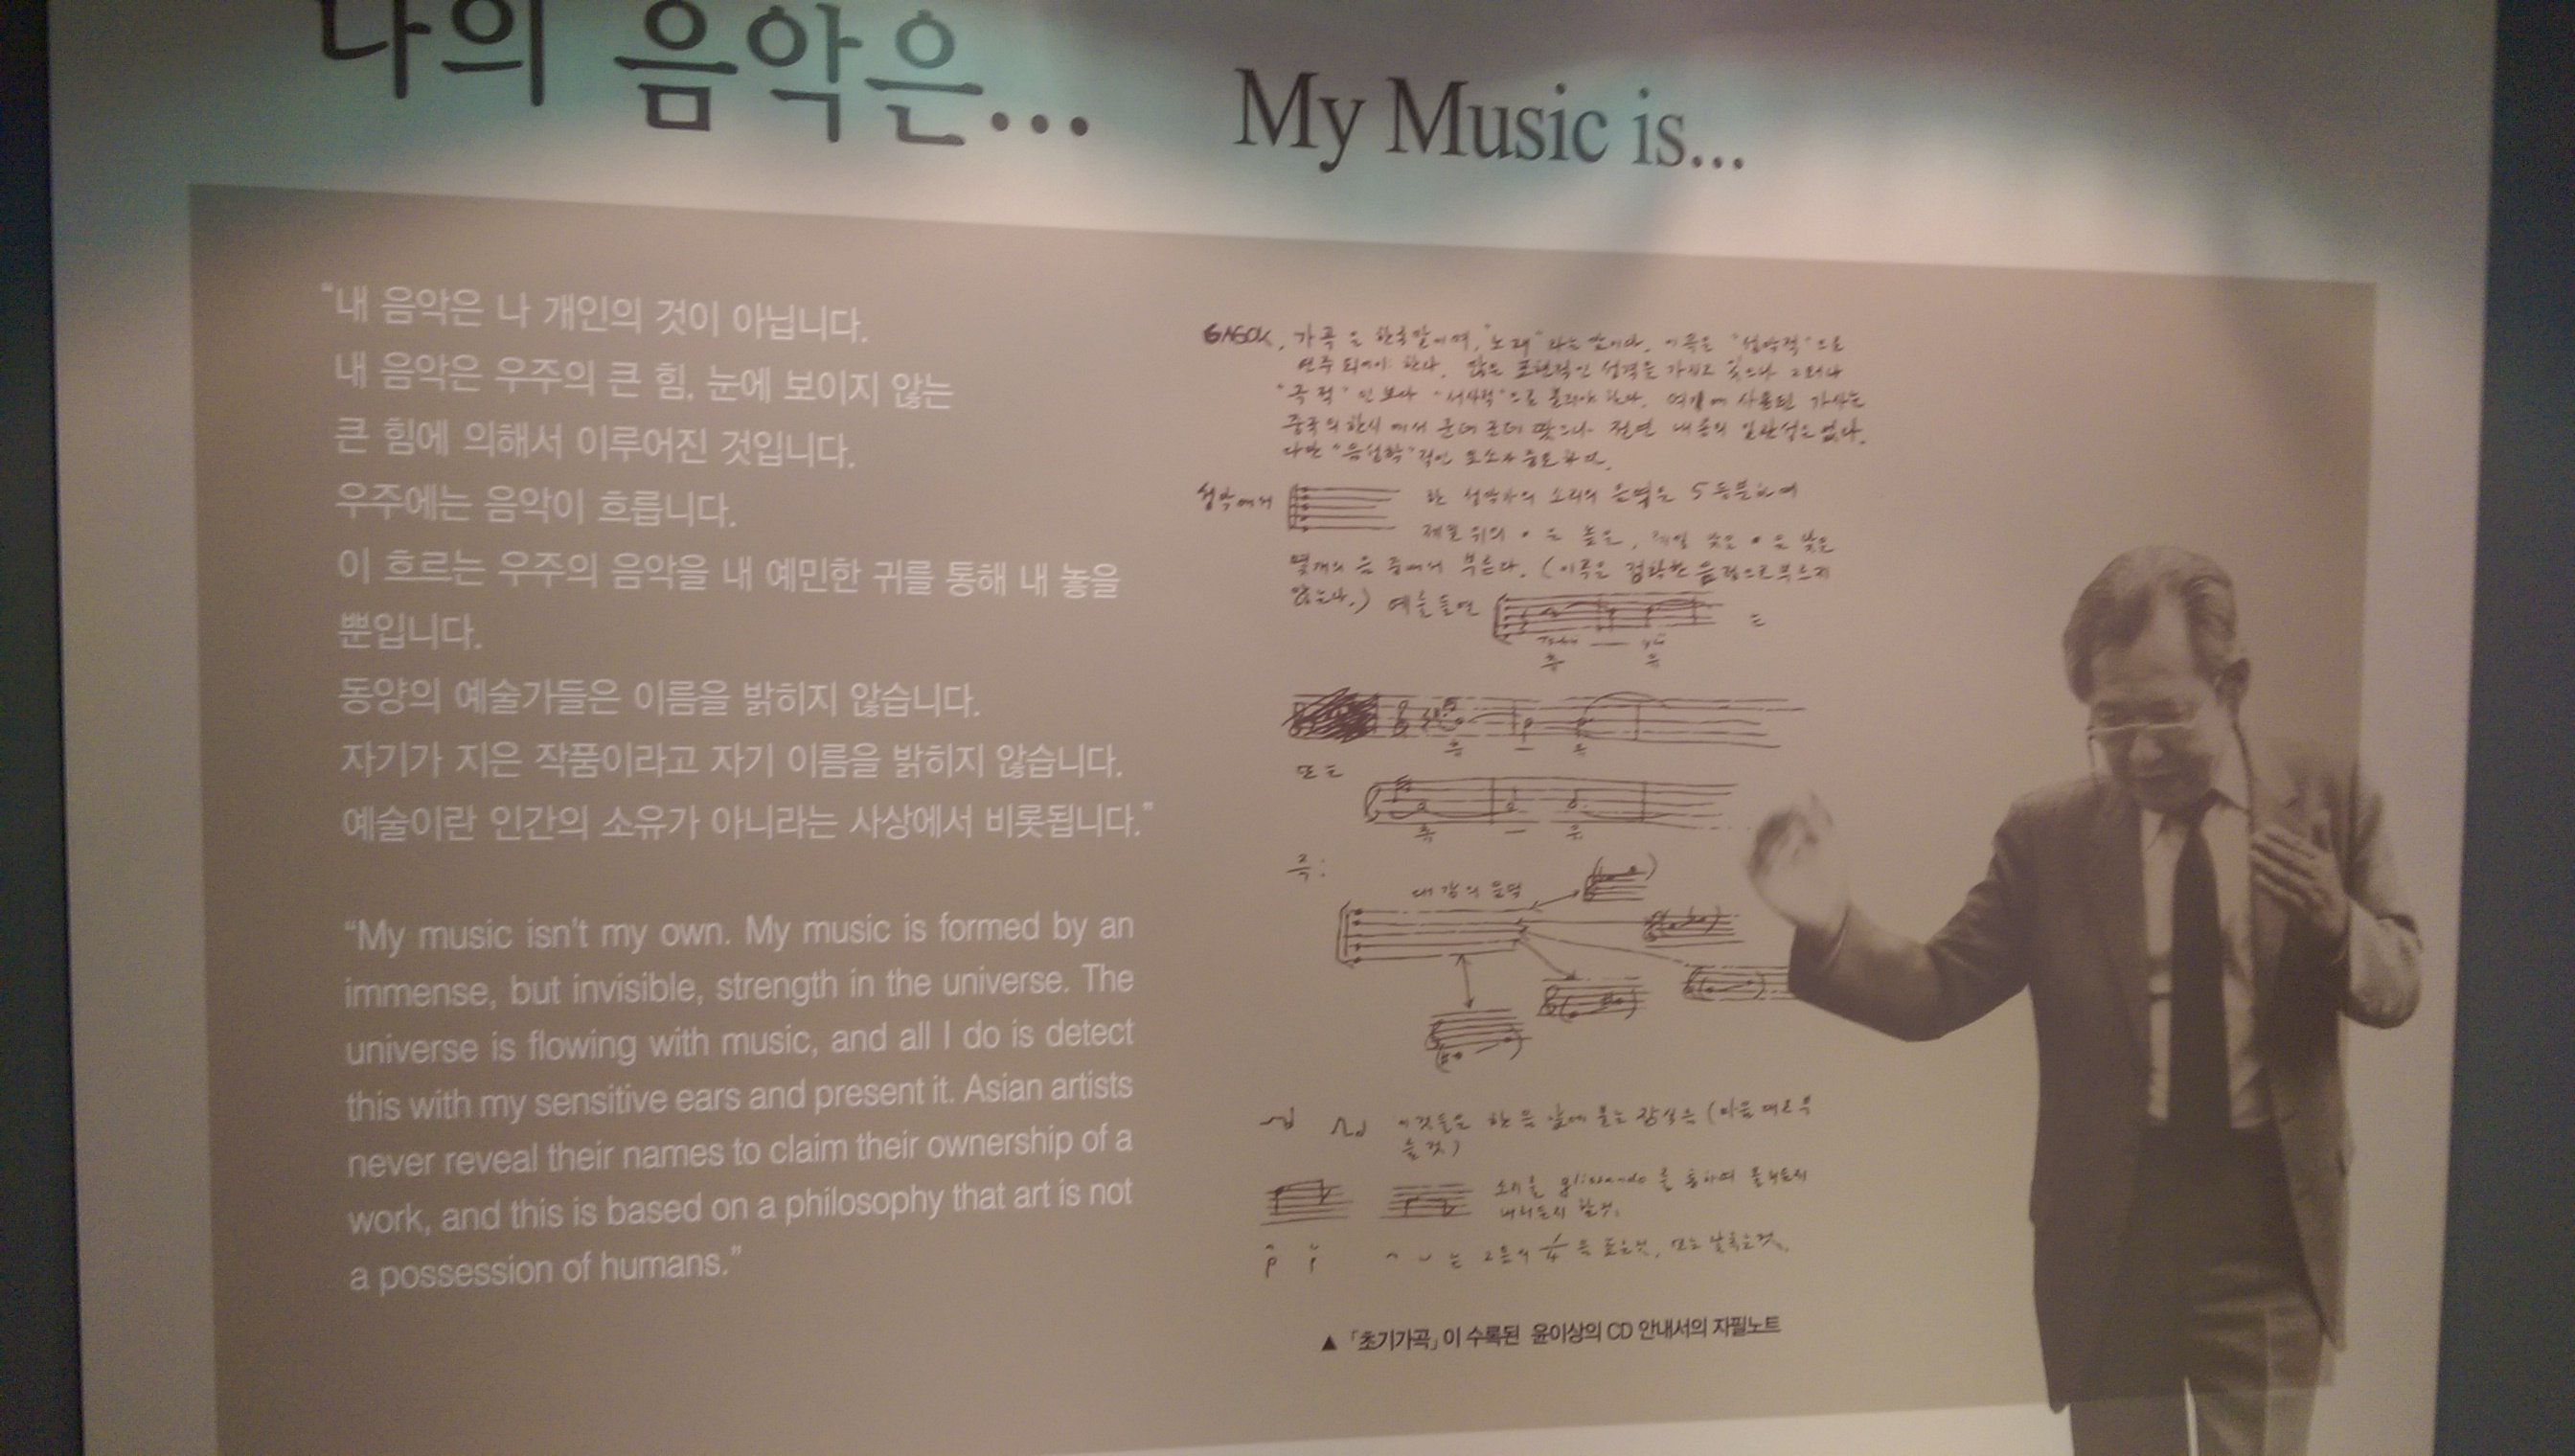 A display from the exhibition at the Isang Yun Memorial containing the following quote from Yun: